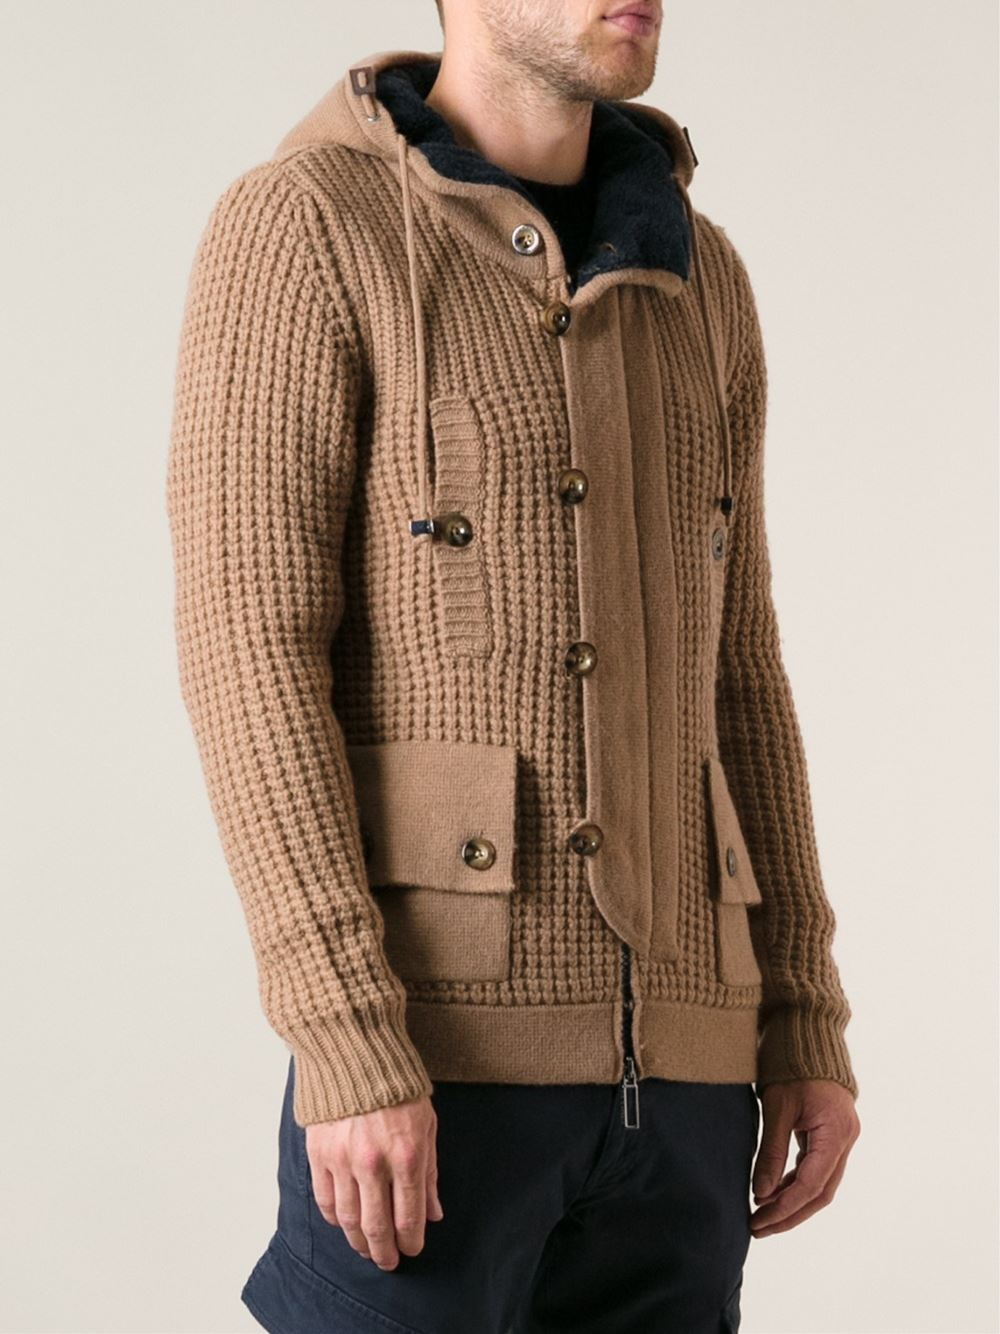 Paolo pecora Cable Knit Hooded Cardigan in Natural for Men | Lyst